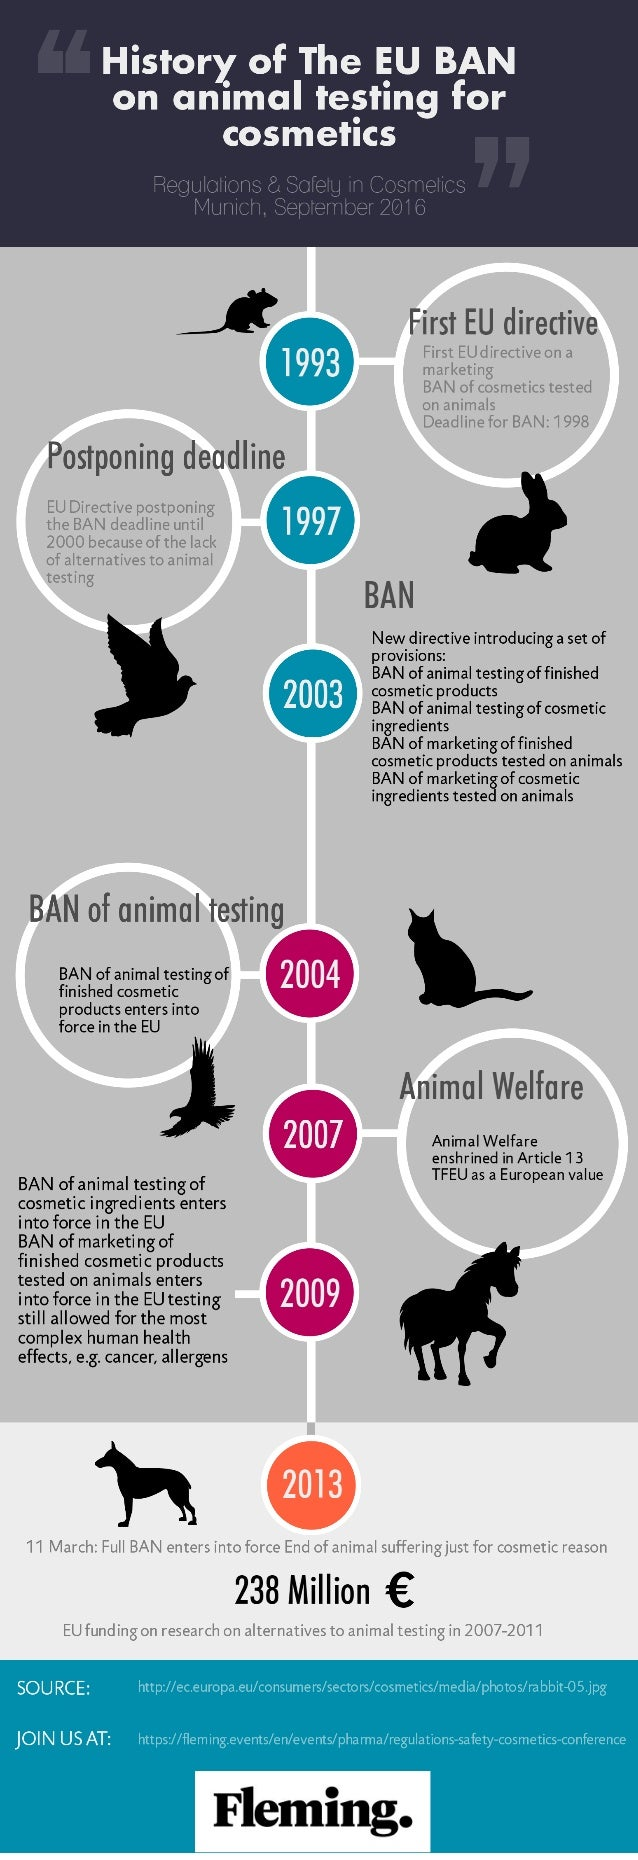 animal testing article Here are just a few examples of the range of state-of-the-art alternatives to animal testing available and their demonstrated benefits.